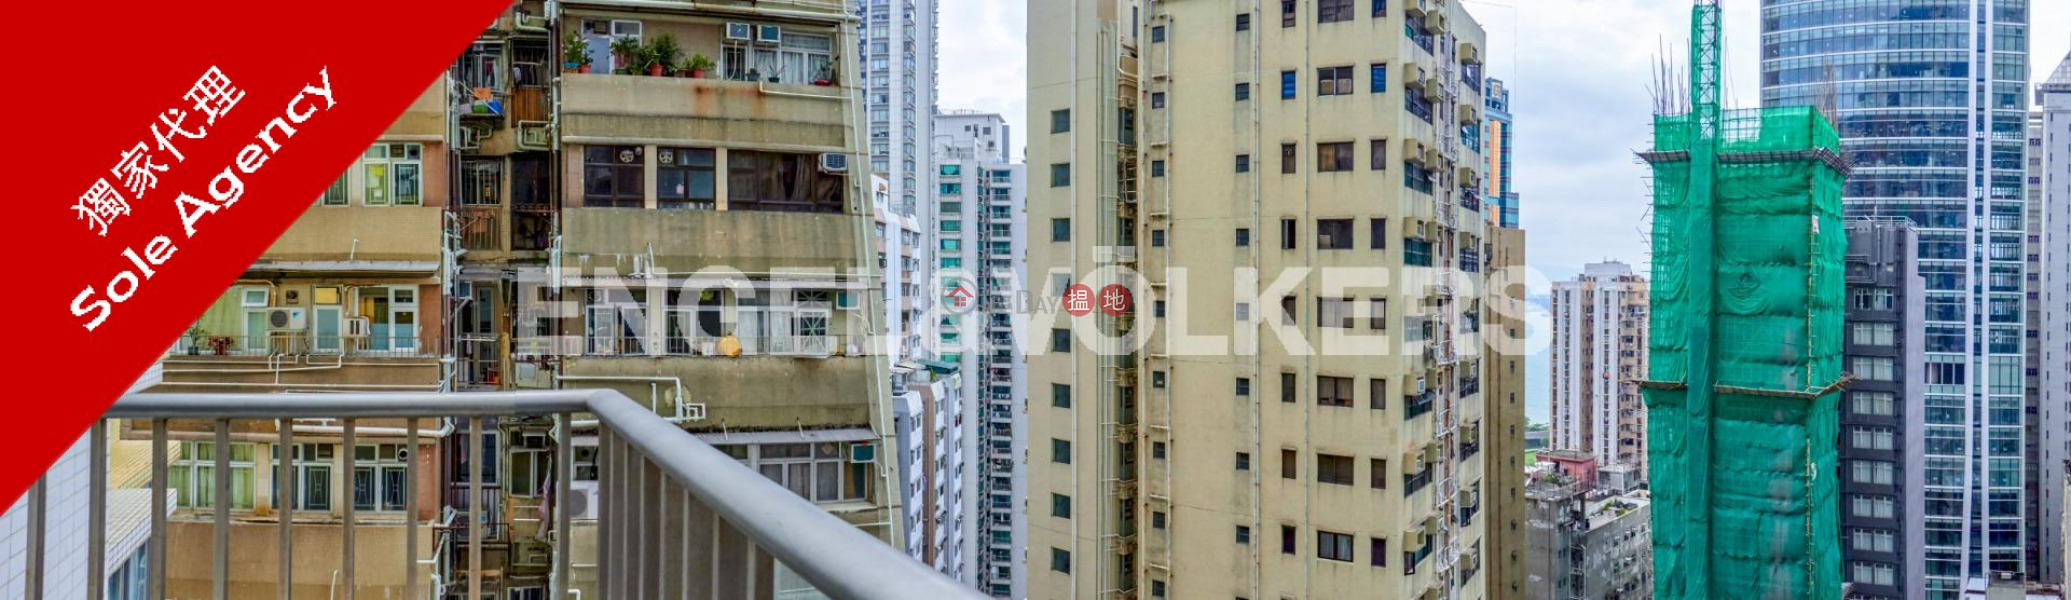 One Pacific Heights Please Select Residential Rental Listings | HK$ 45,000/ month